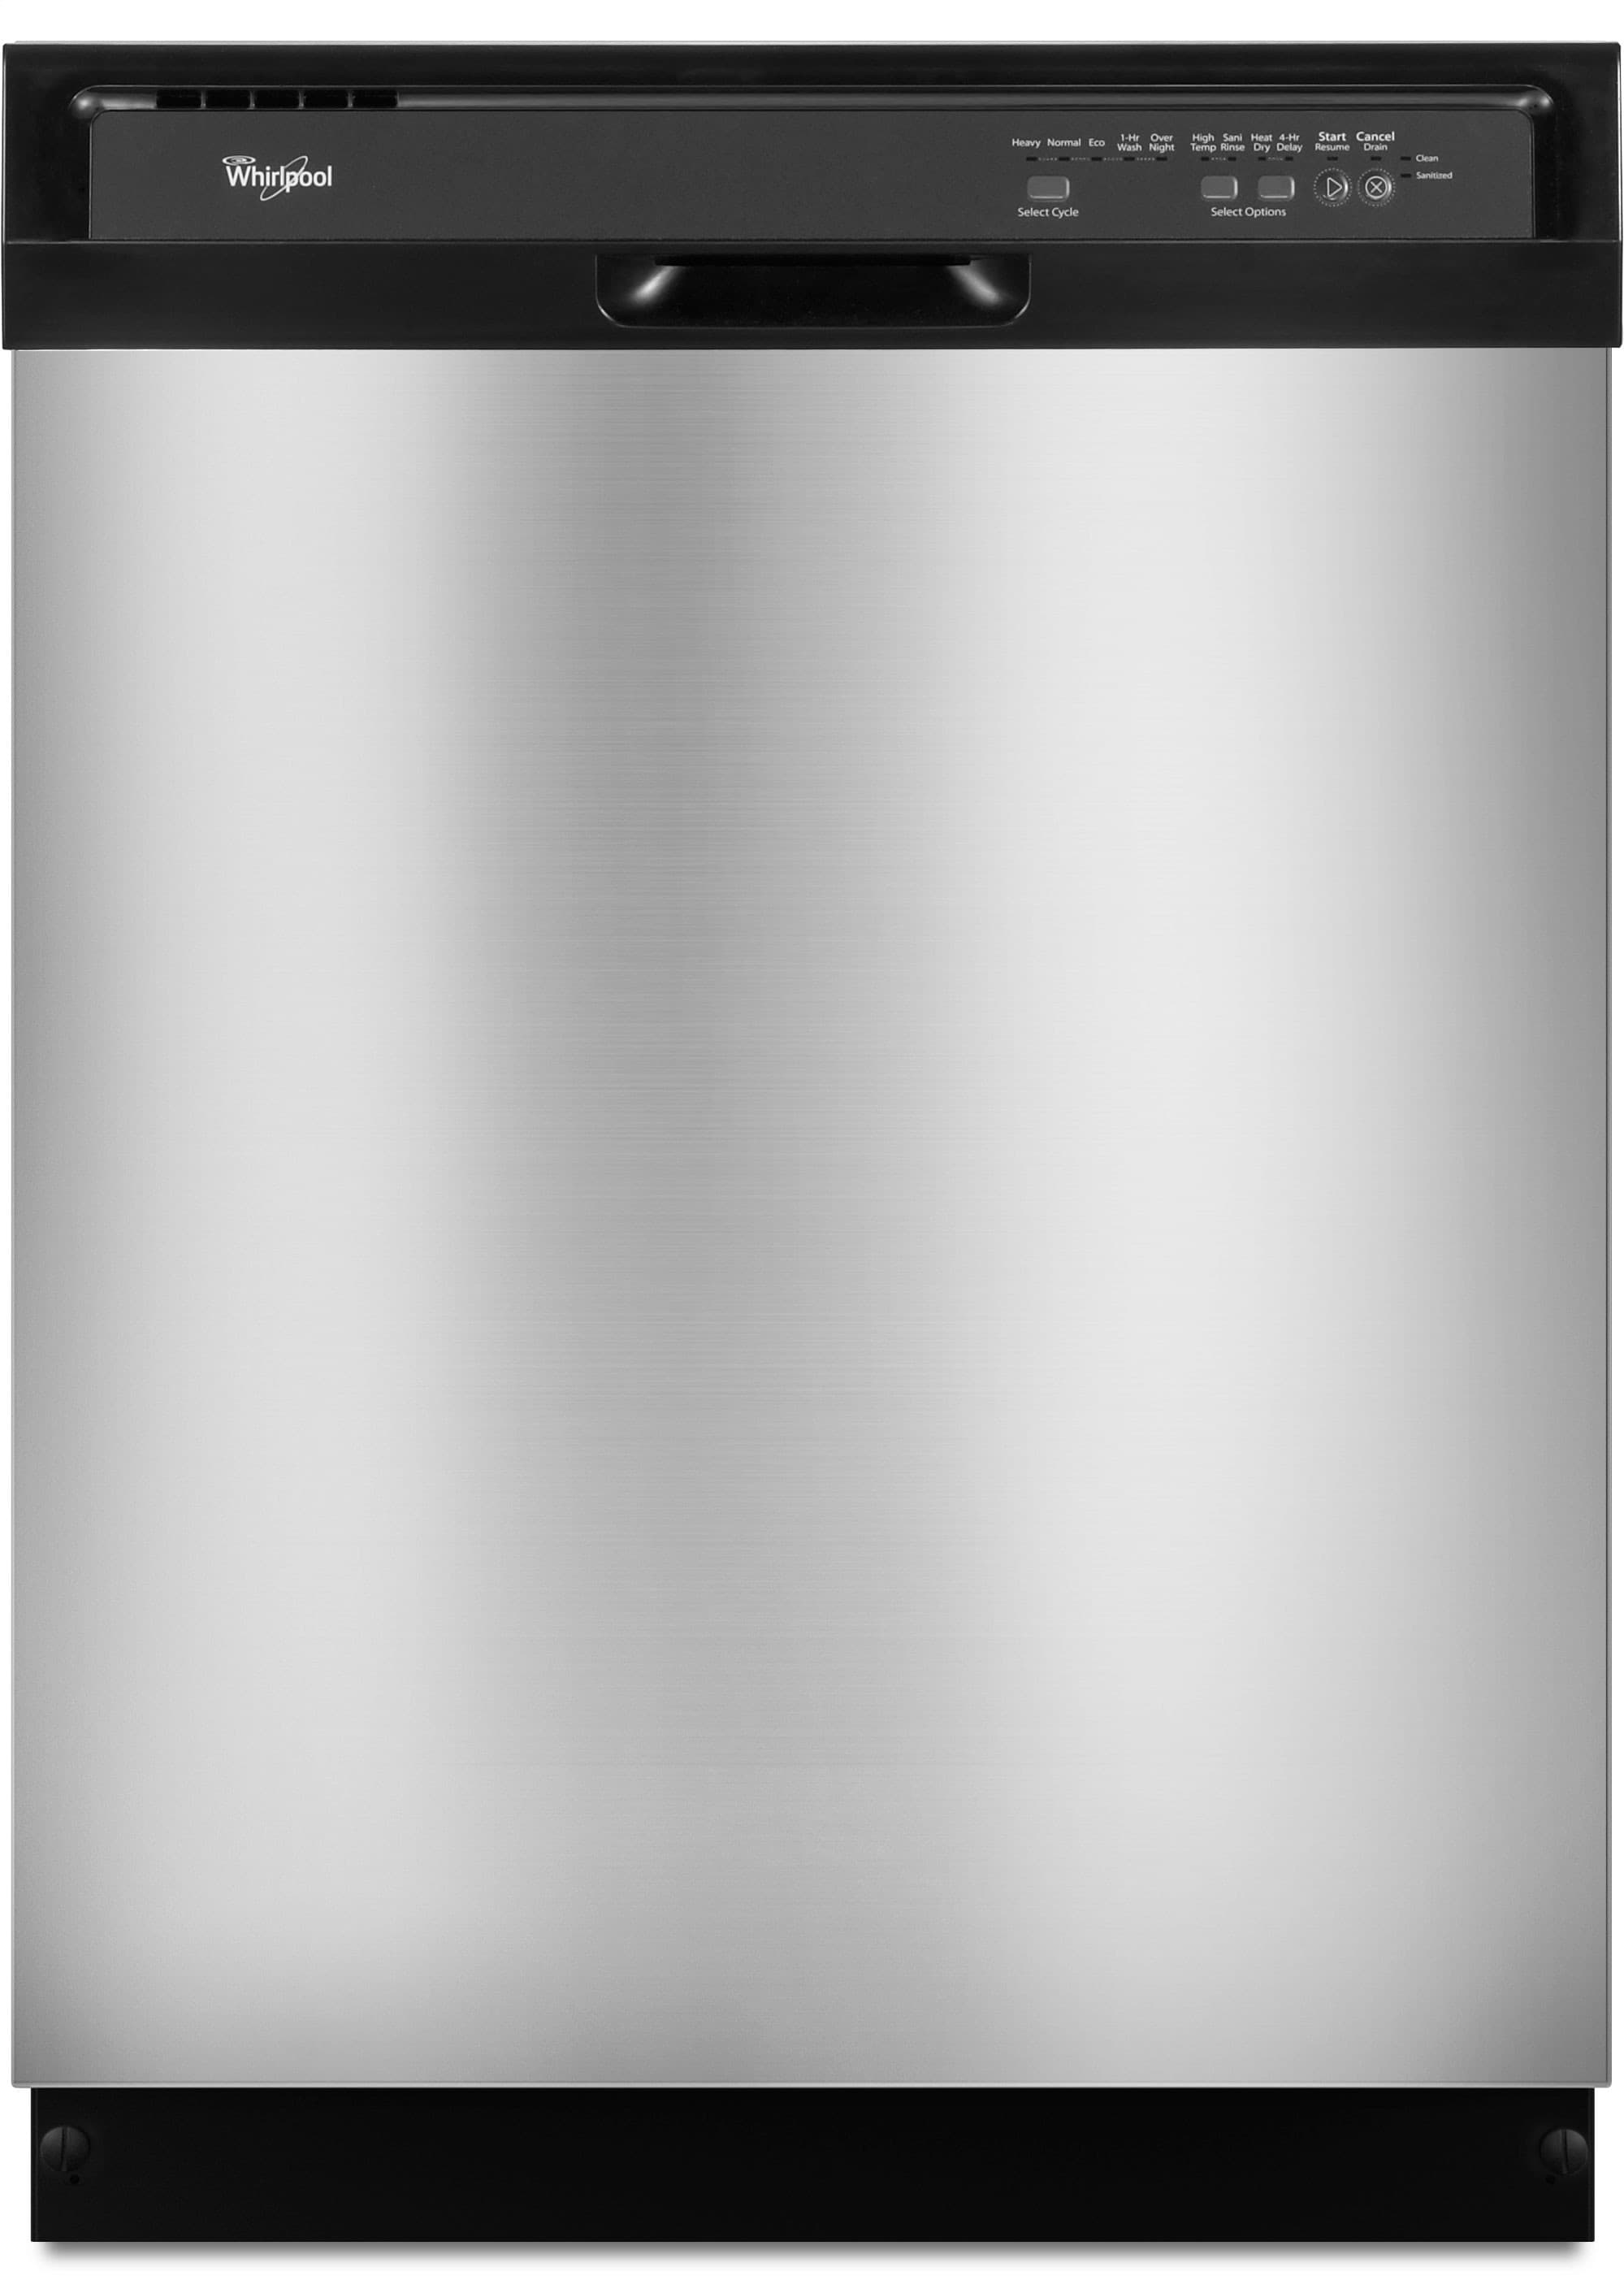 Whirlpool Wdf510pays Full Console Dishwasher With 14 Place